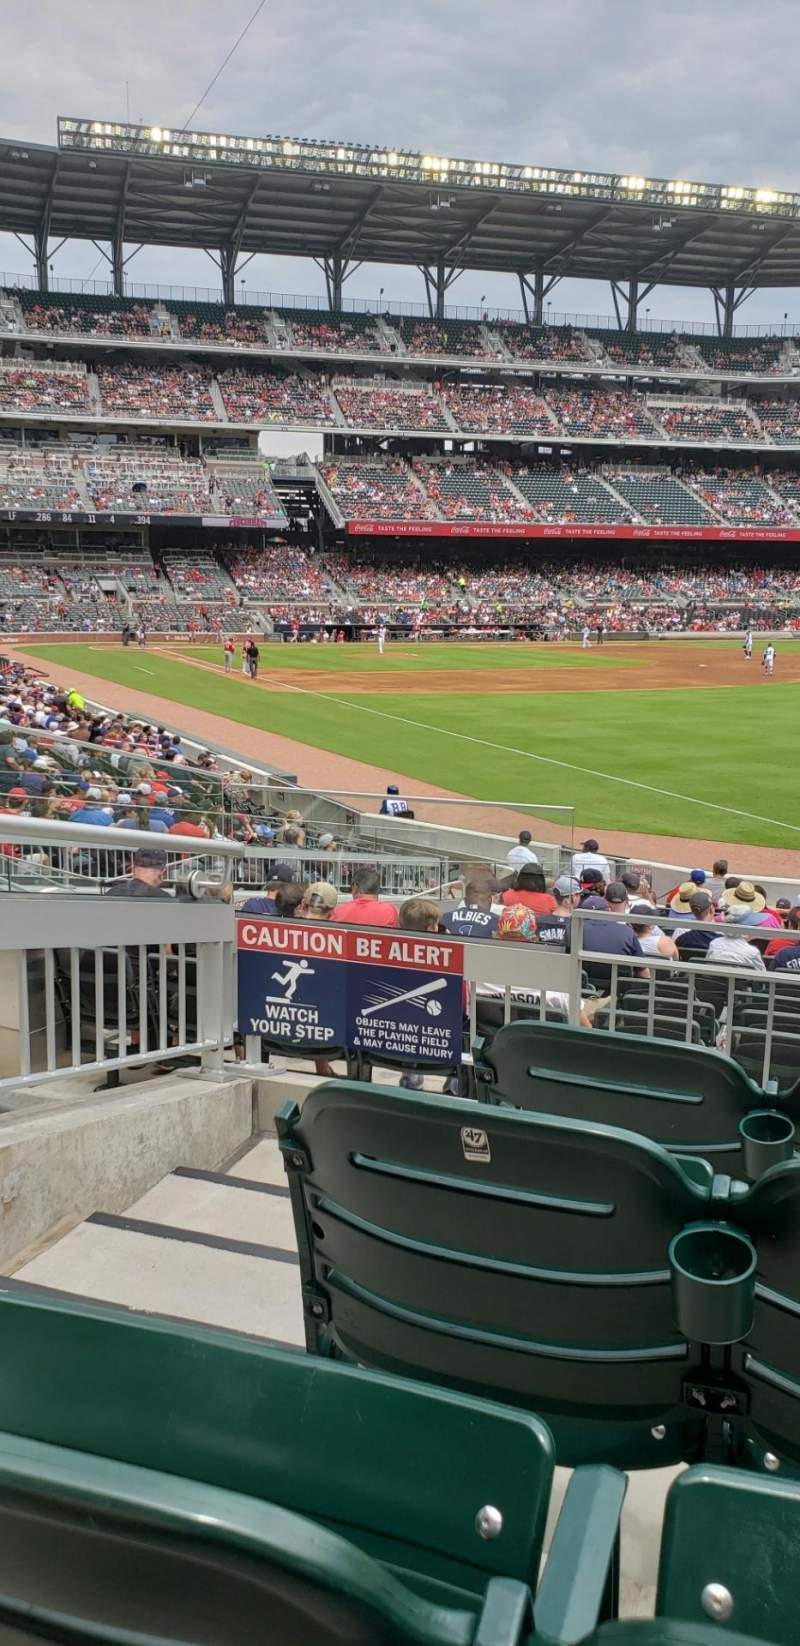 Seating view for SunTrust Park Section 110 Row 4 Seat 8 and 9